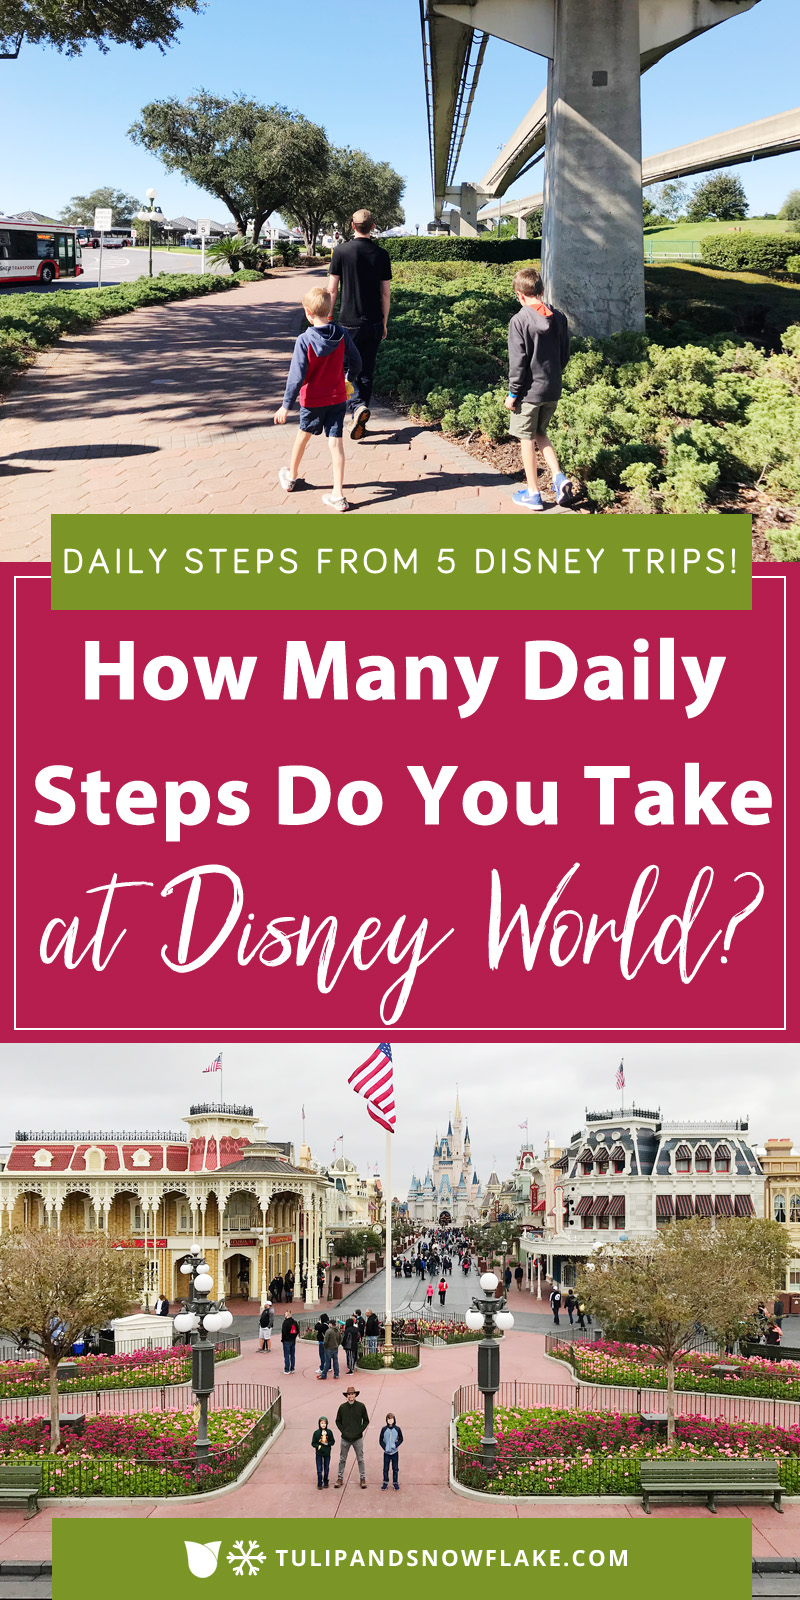 How many daily steps do you take at Disney World?